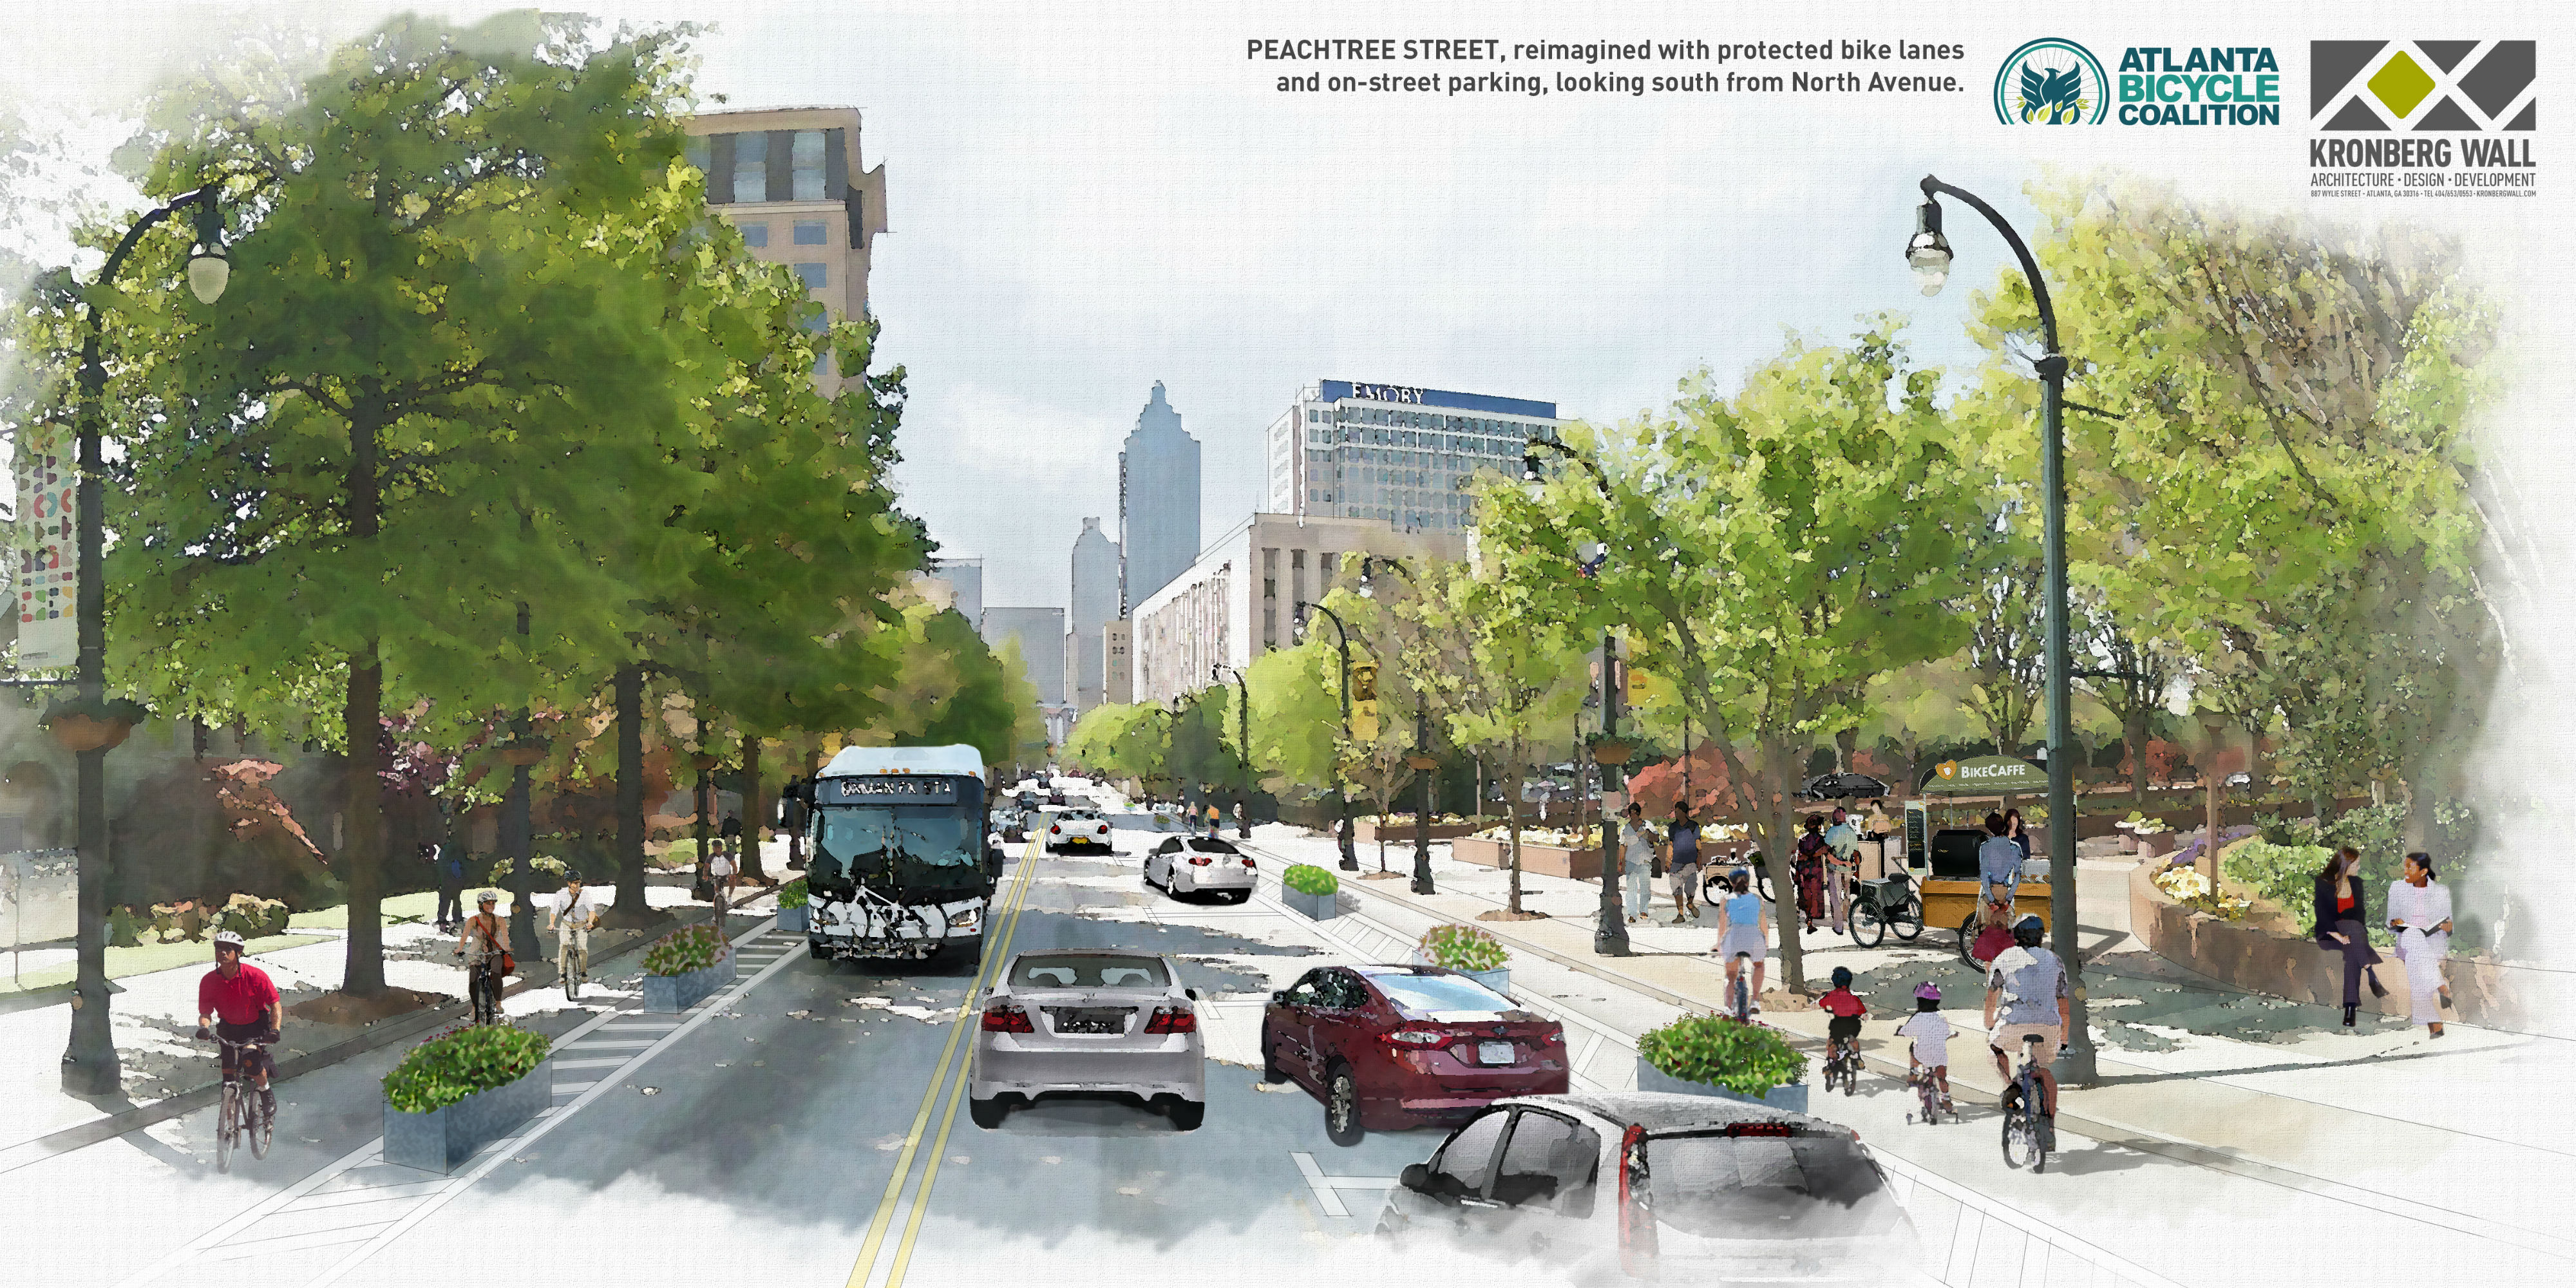 Peachtree rendering